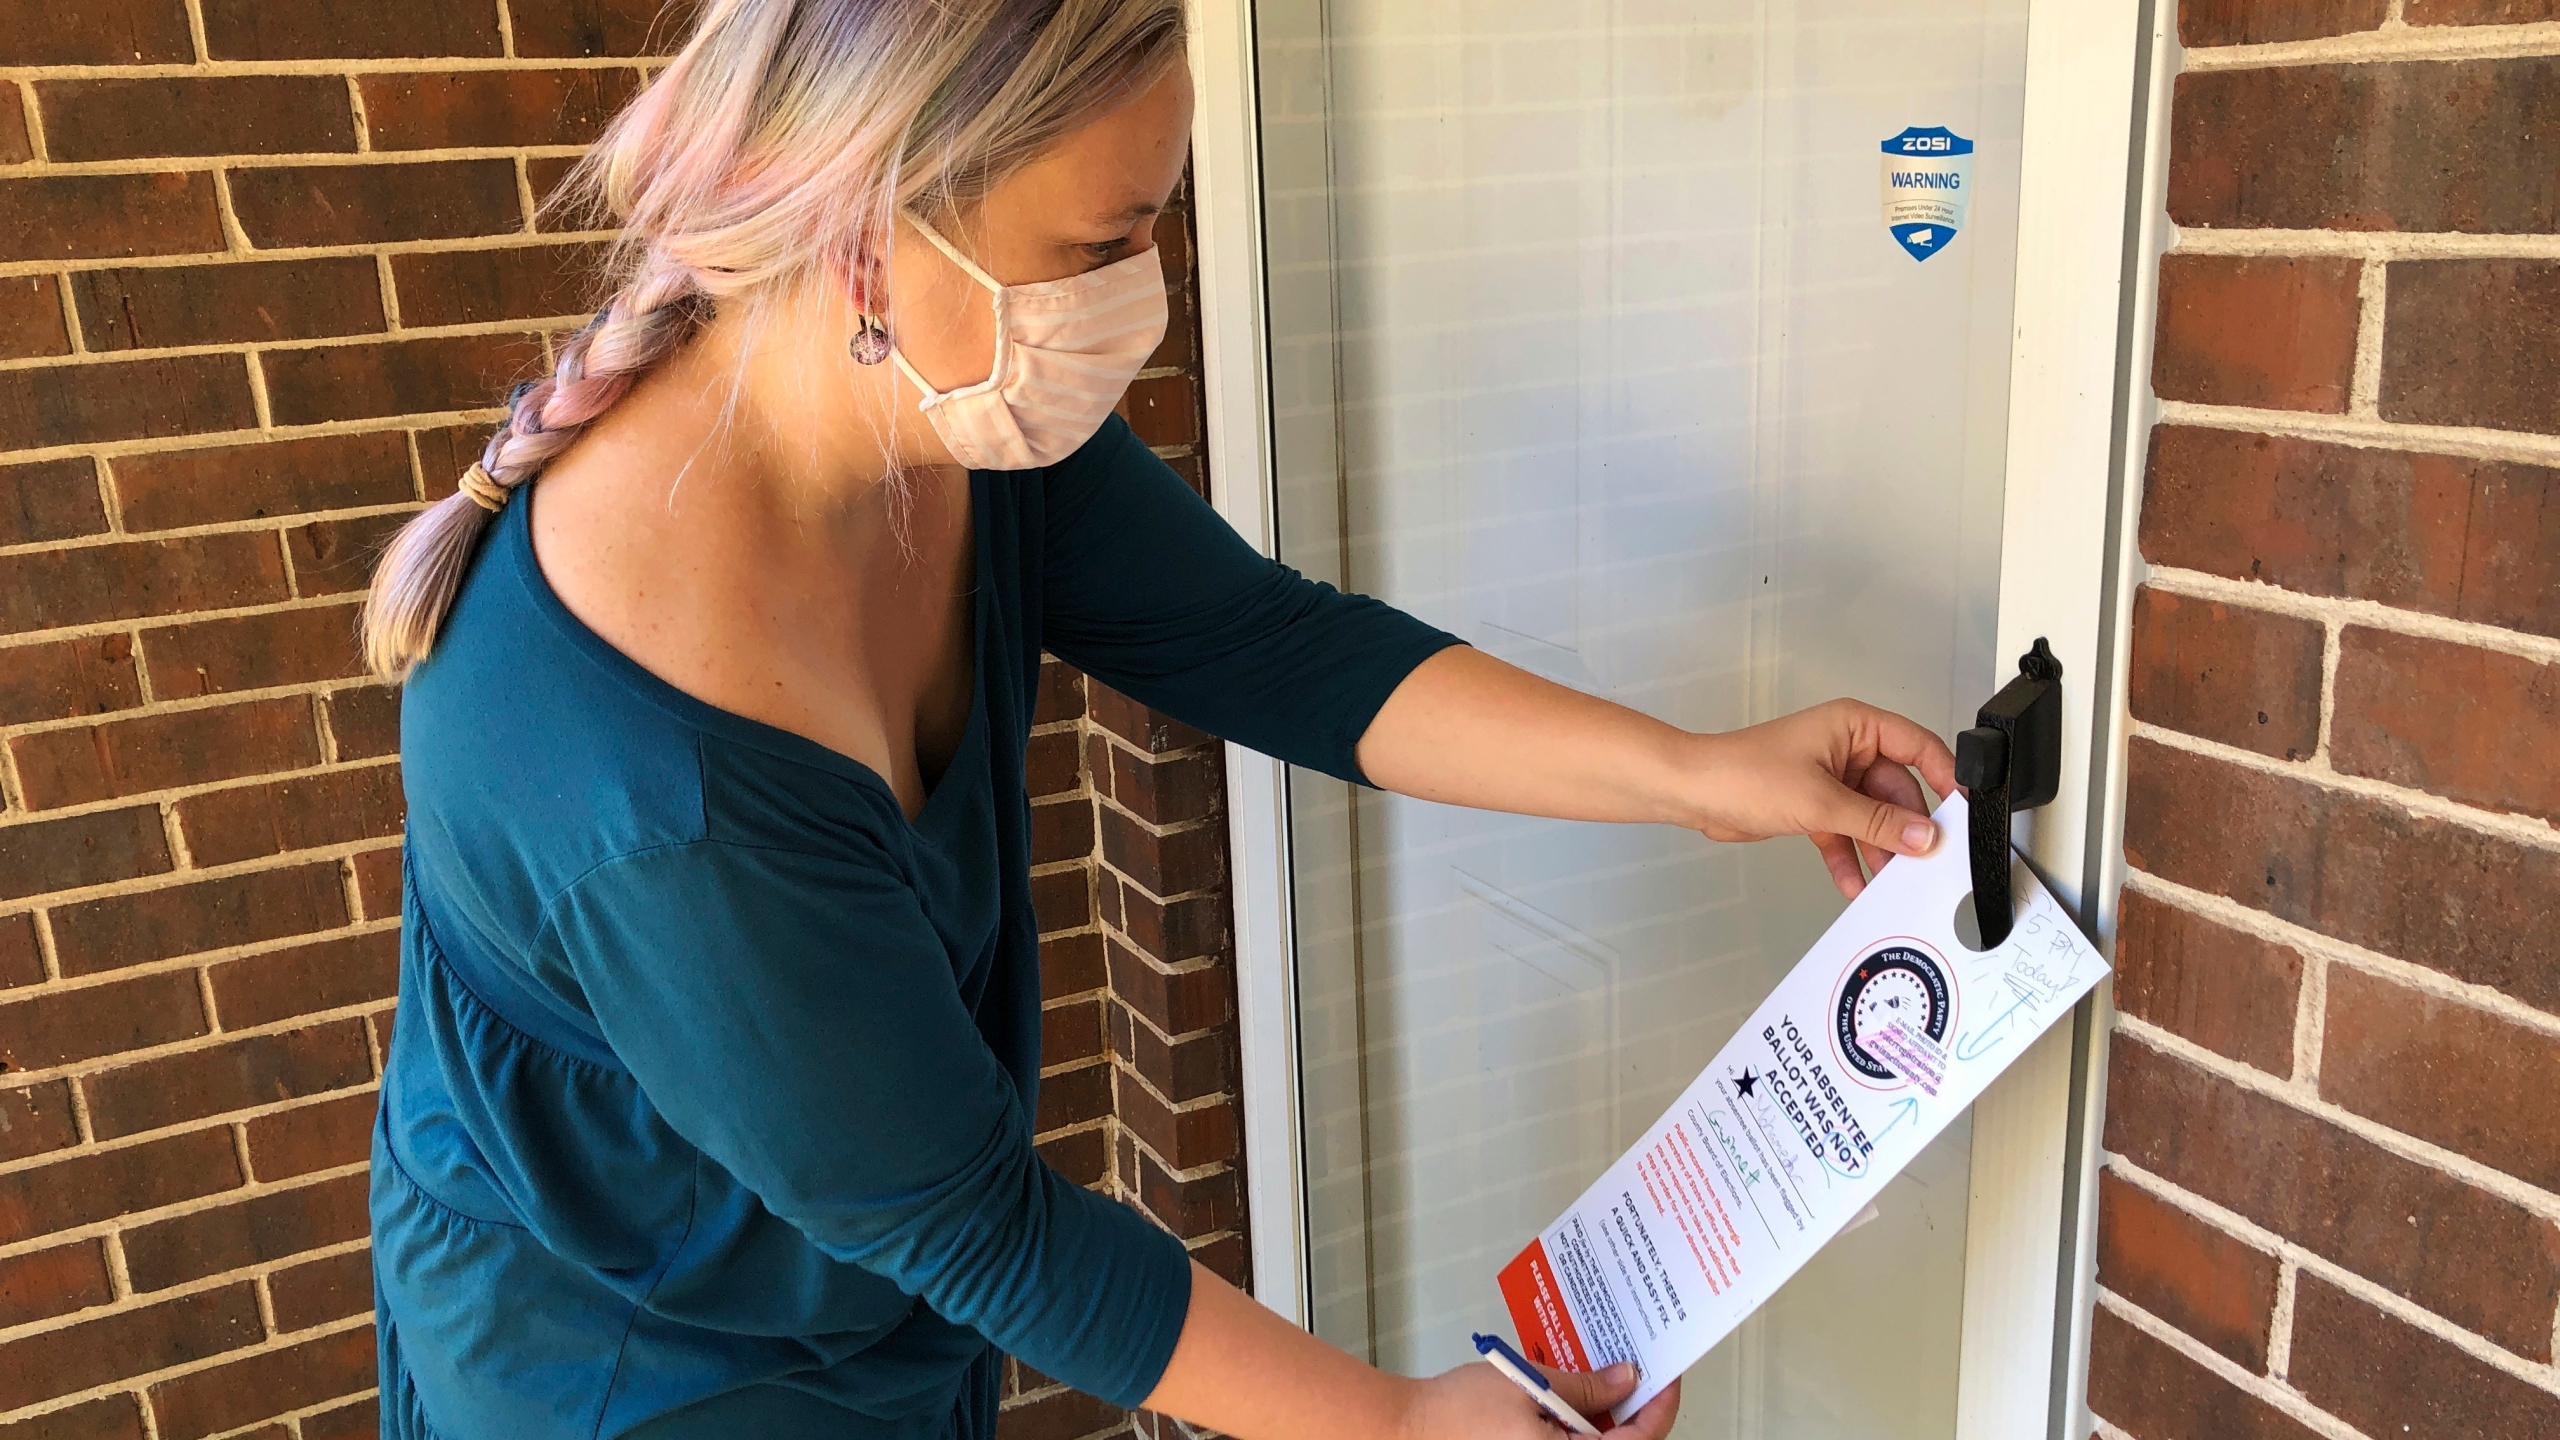 Christin Clatterbuck leaves an affidavit and information about fixing absentee ballots on the door of a home in Stone Mountain, Ga., Friday, Nov. 6, 2020. (AP Photo/Sudhin Thanawala)